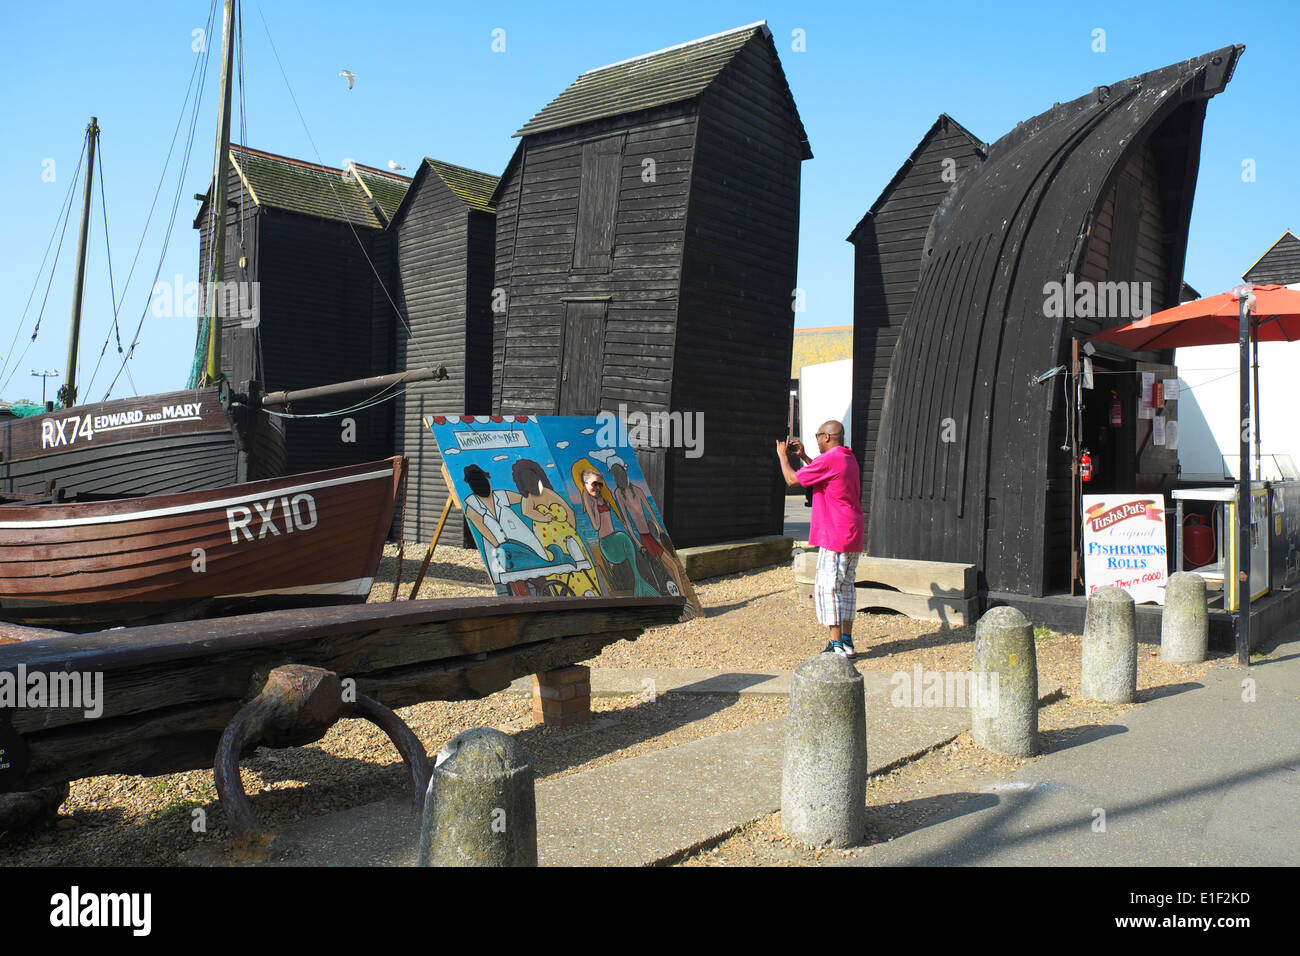 Visitor taking snapshot of girl looking through cartoon body picture board by the traditional black Net Huts, Hastings Old Town - Stock Image